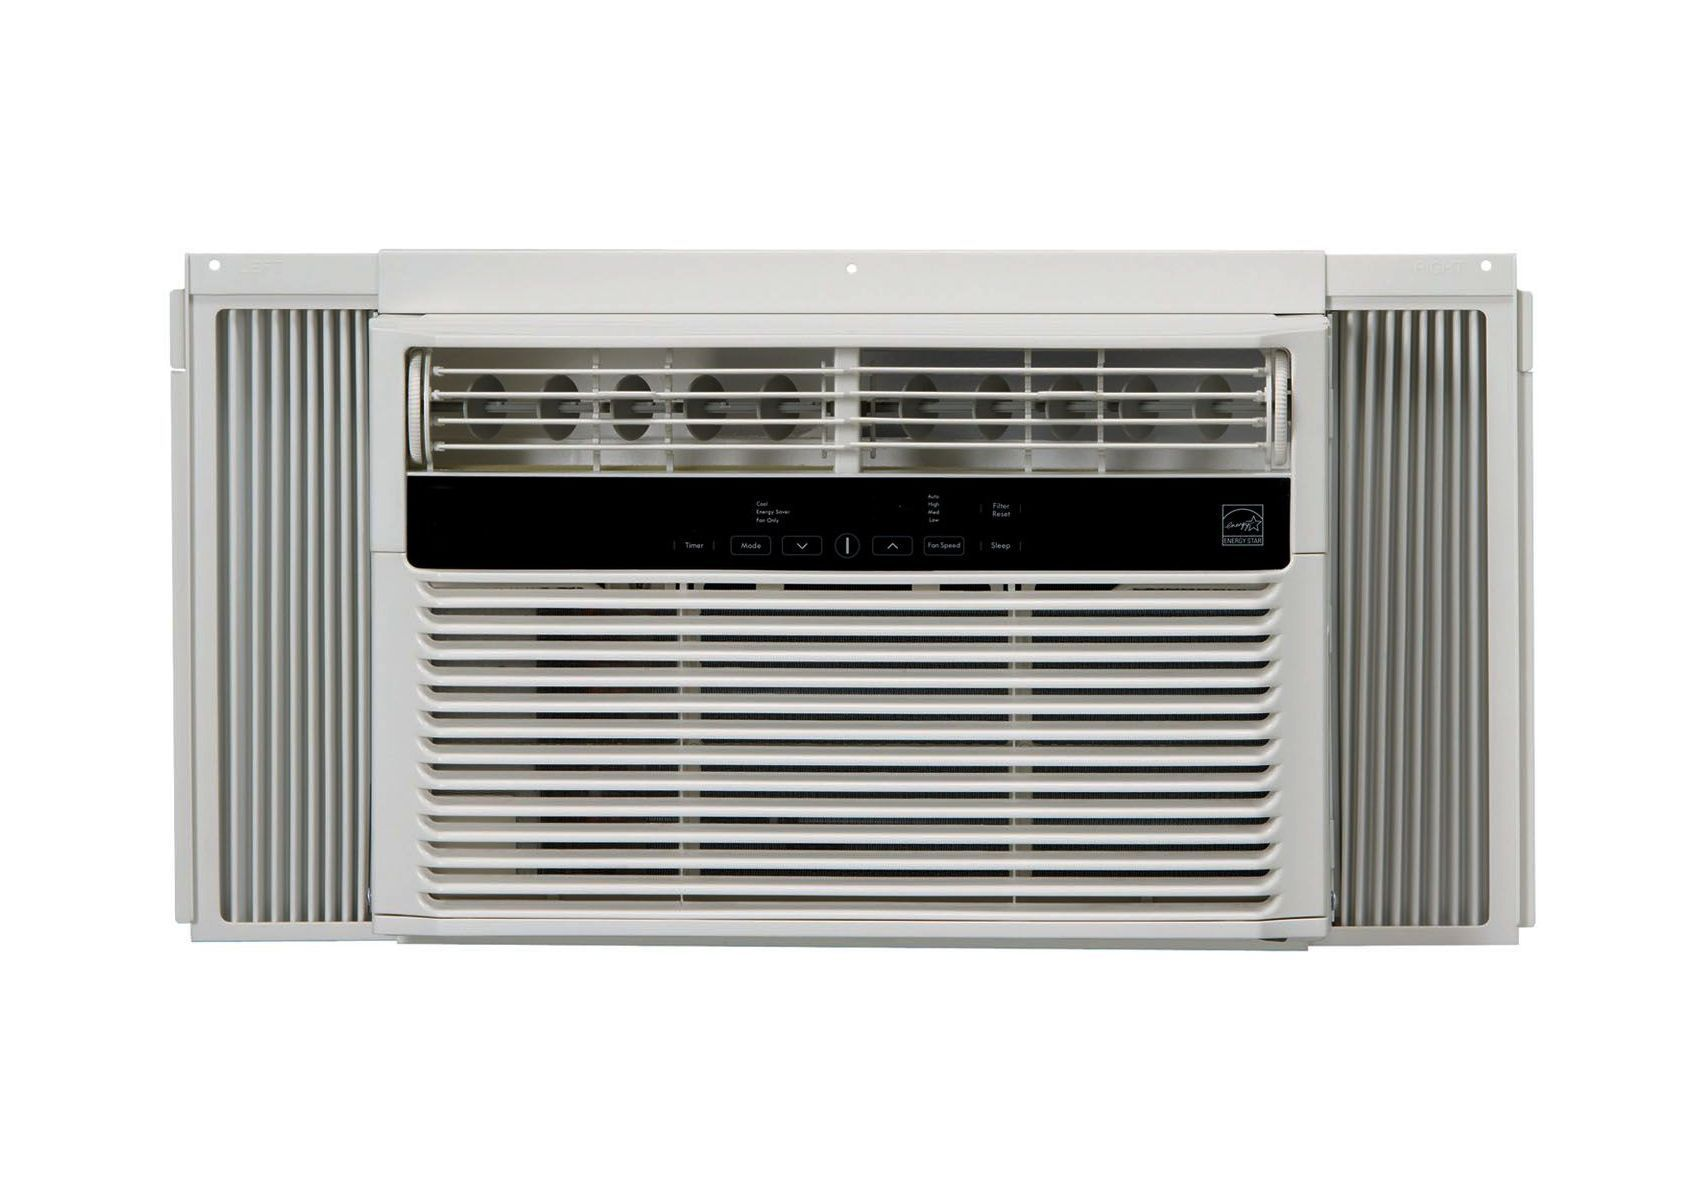 The Mobile Sharp Air Portabale Conditioner Unit Room Air